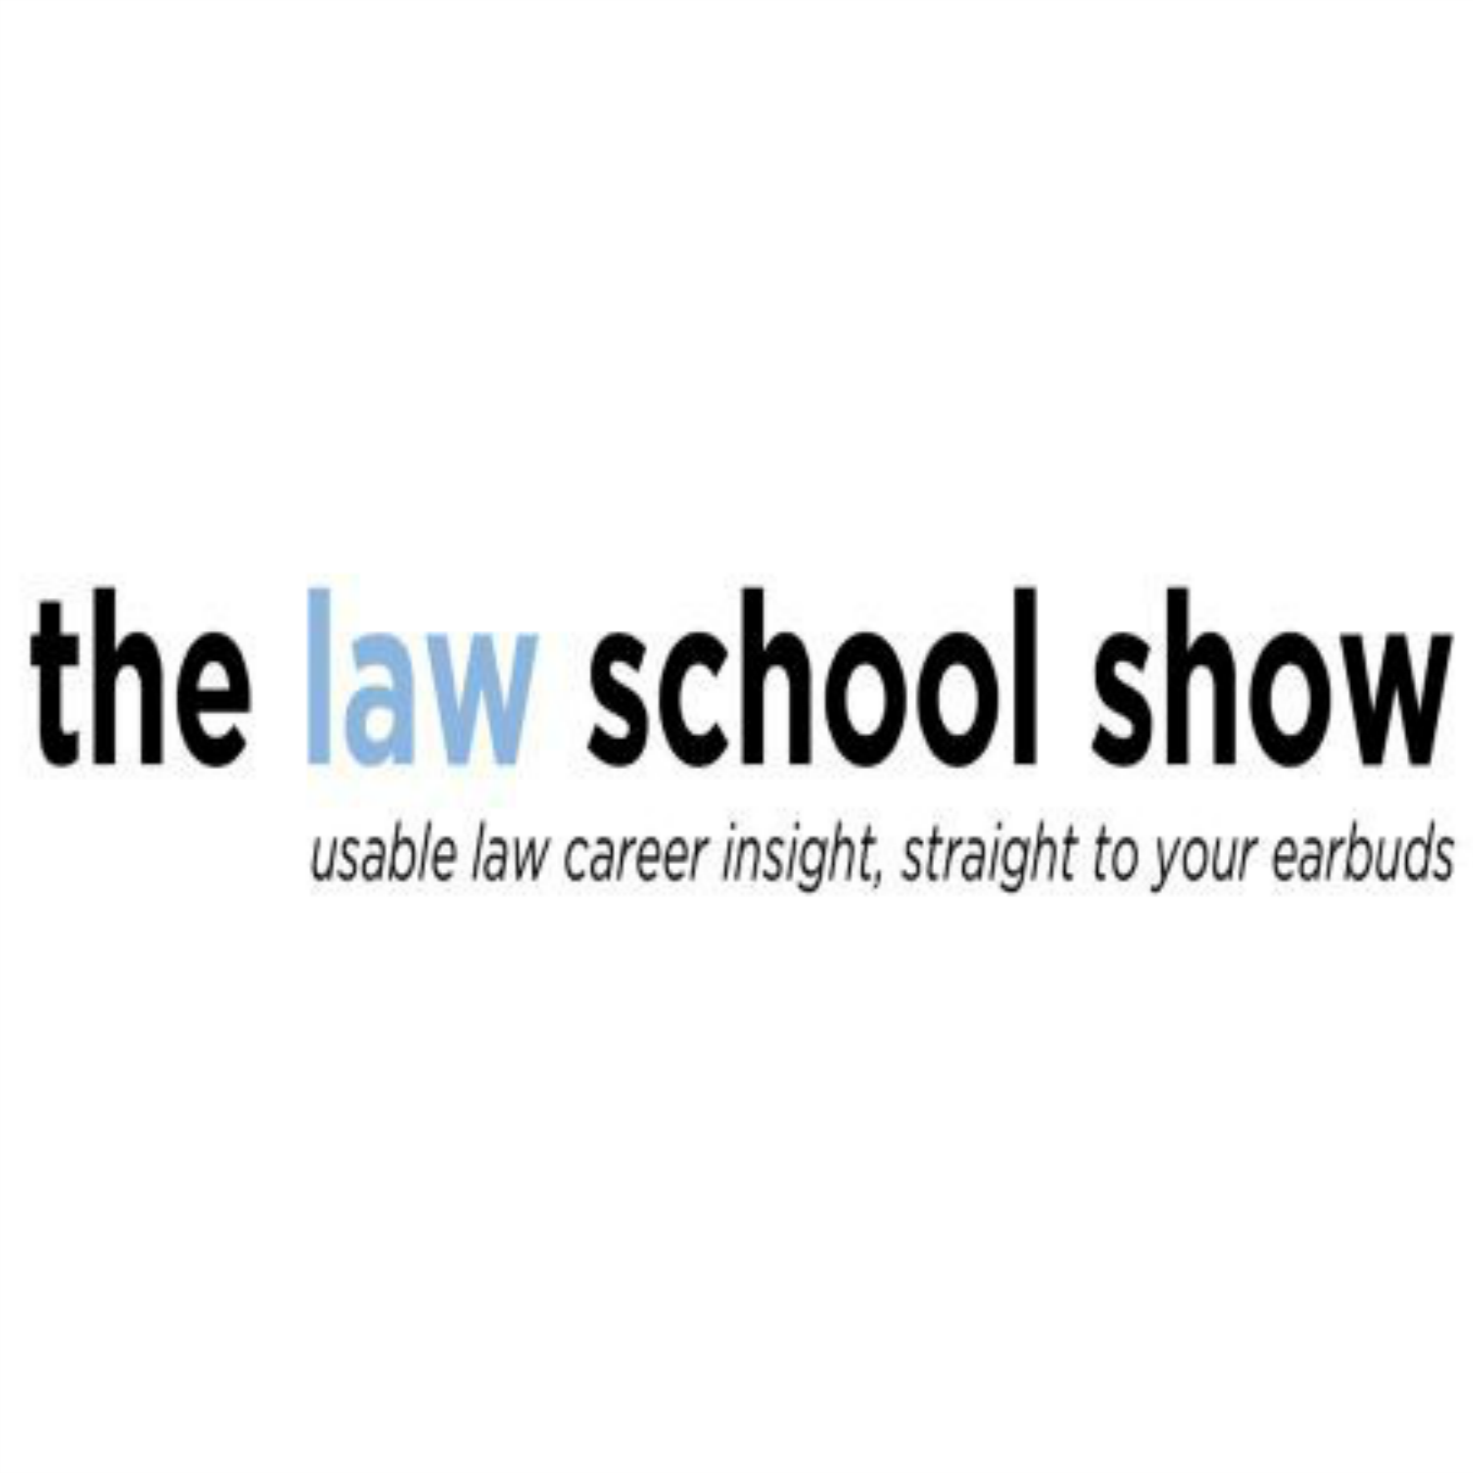 The Law School Show